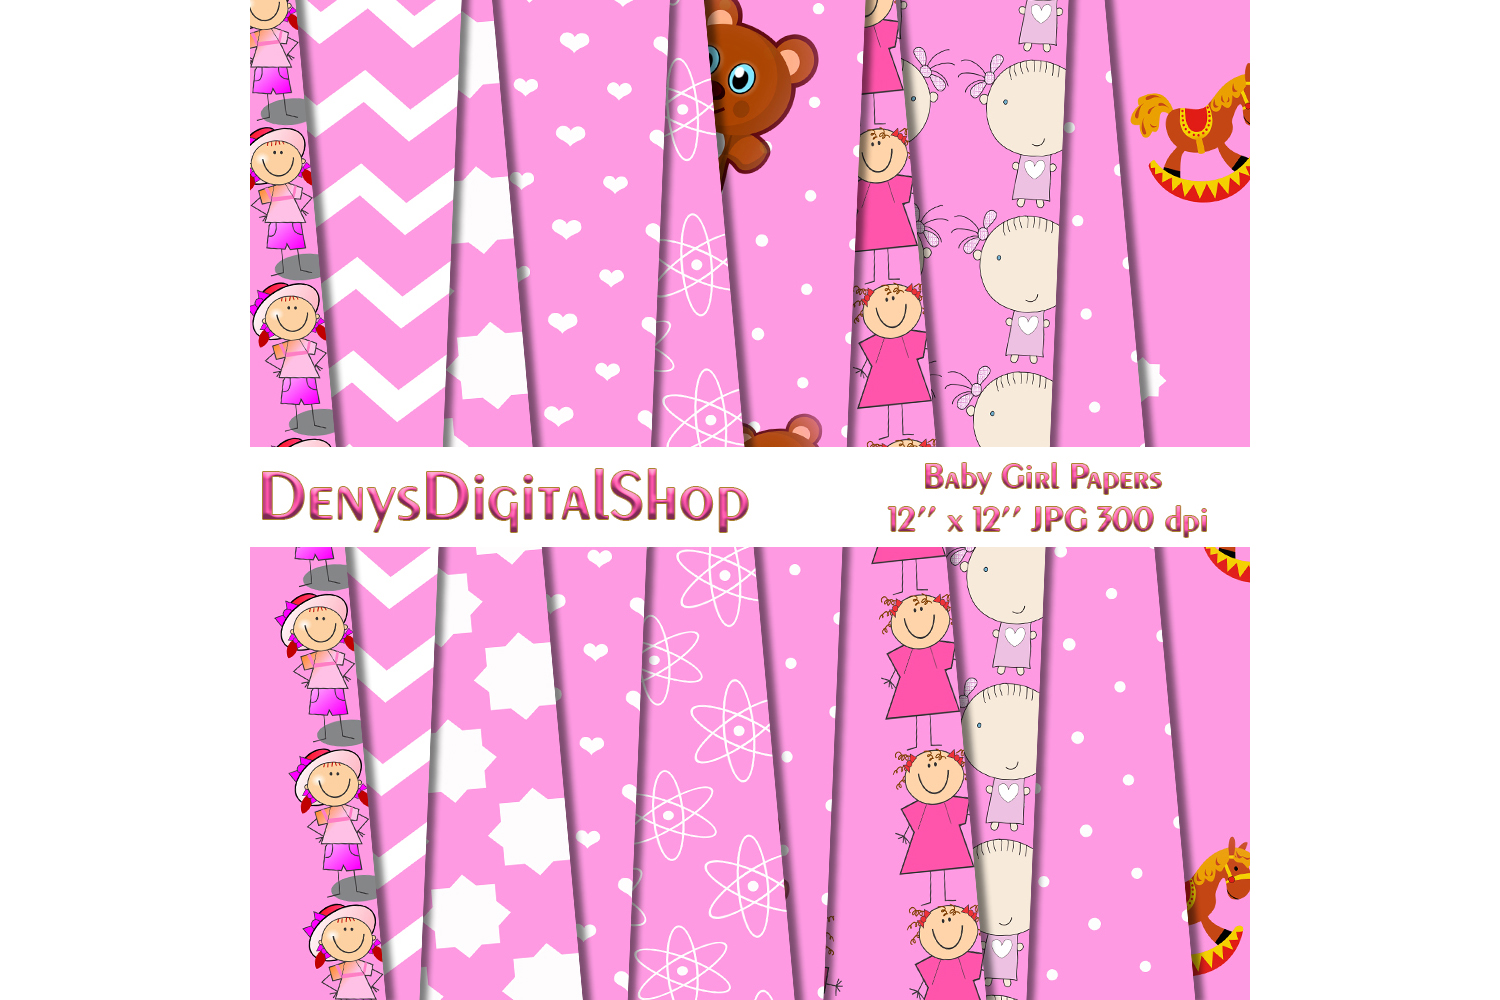 Baby Girls Paper, Girls Patterned, Pink Papers, Baby,50off example image 4